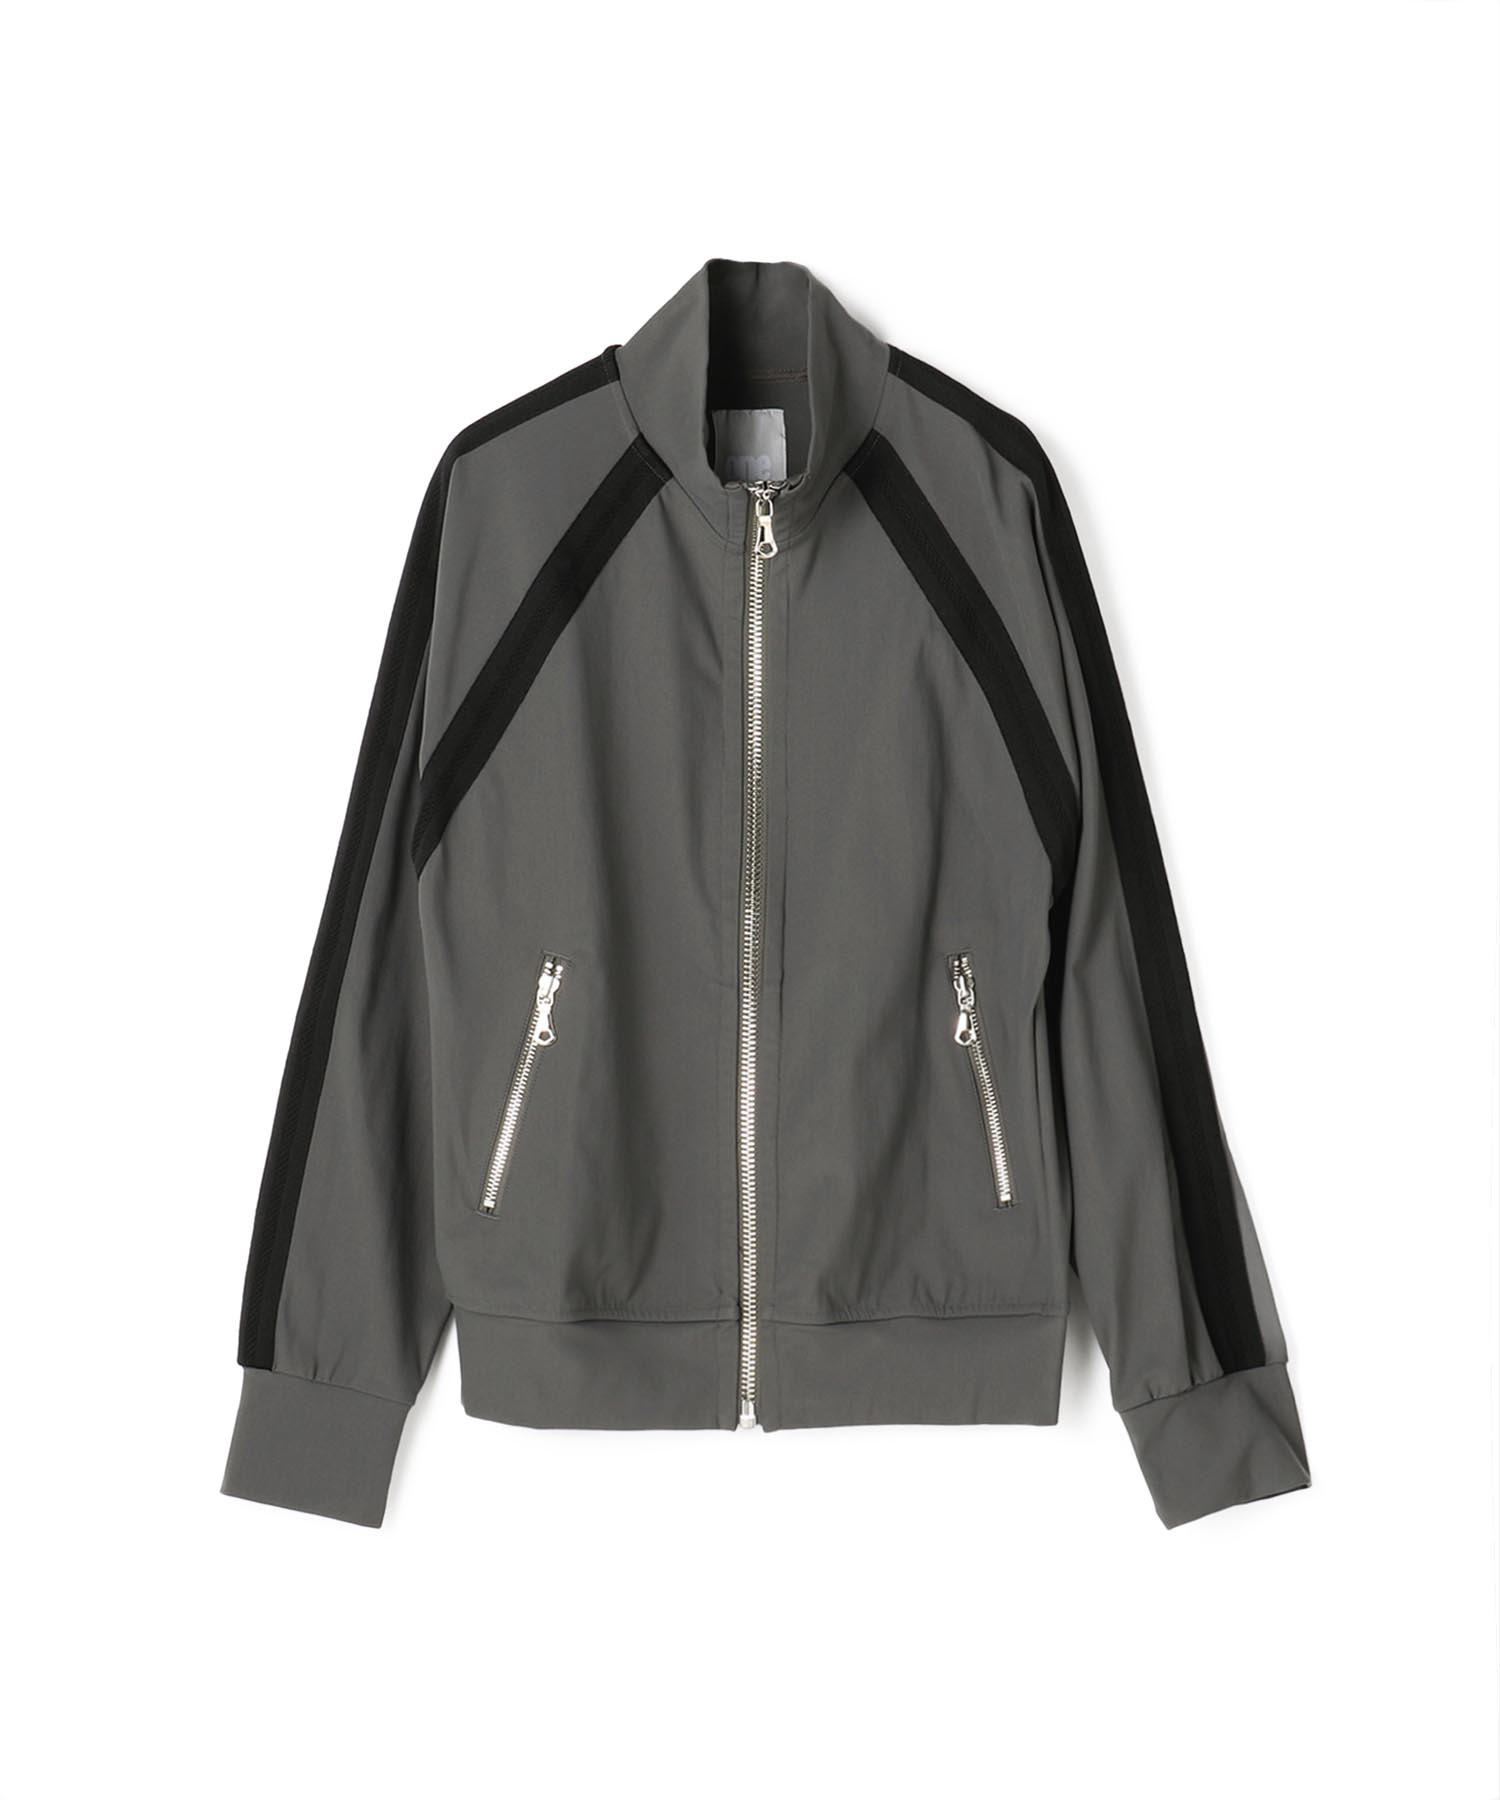 onegravity LINE TRACK JACKET